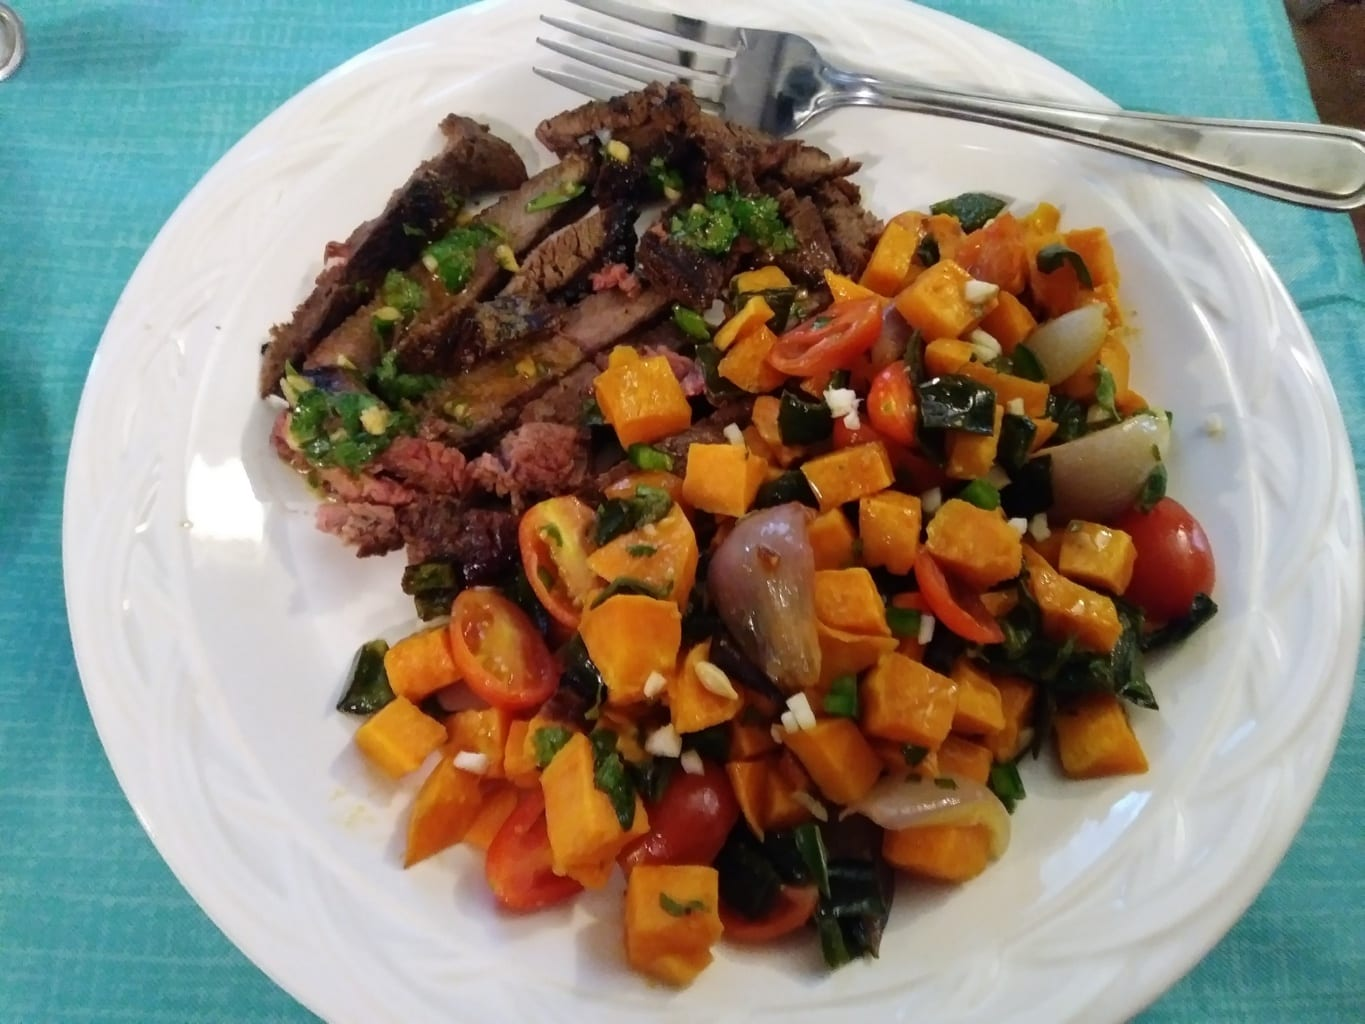 Argentine Chimichurri Steak finished meal